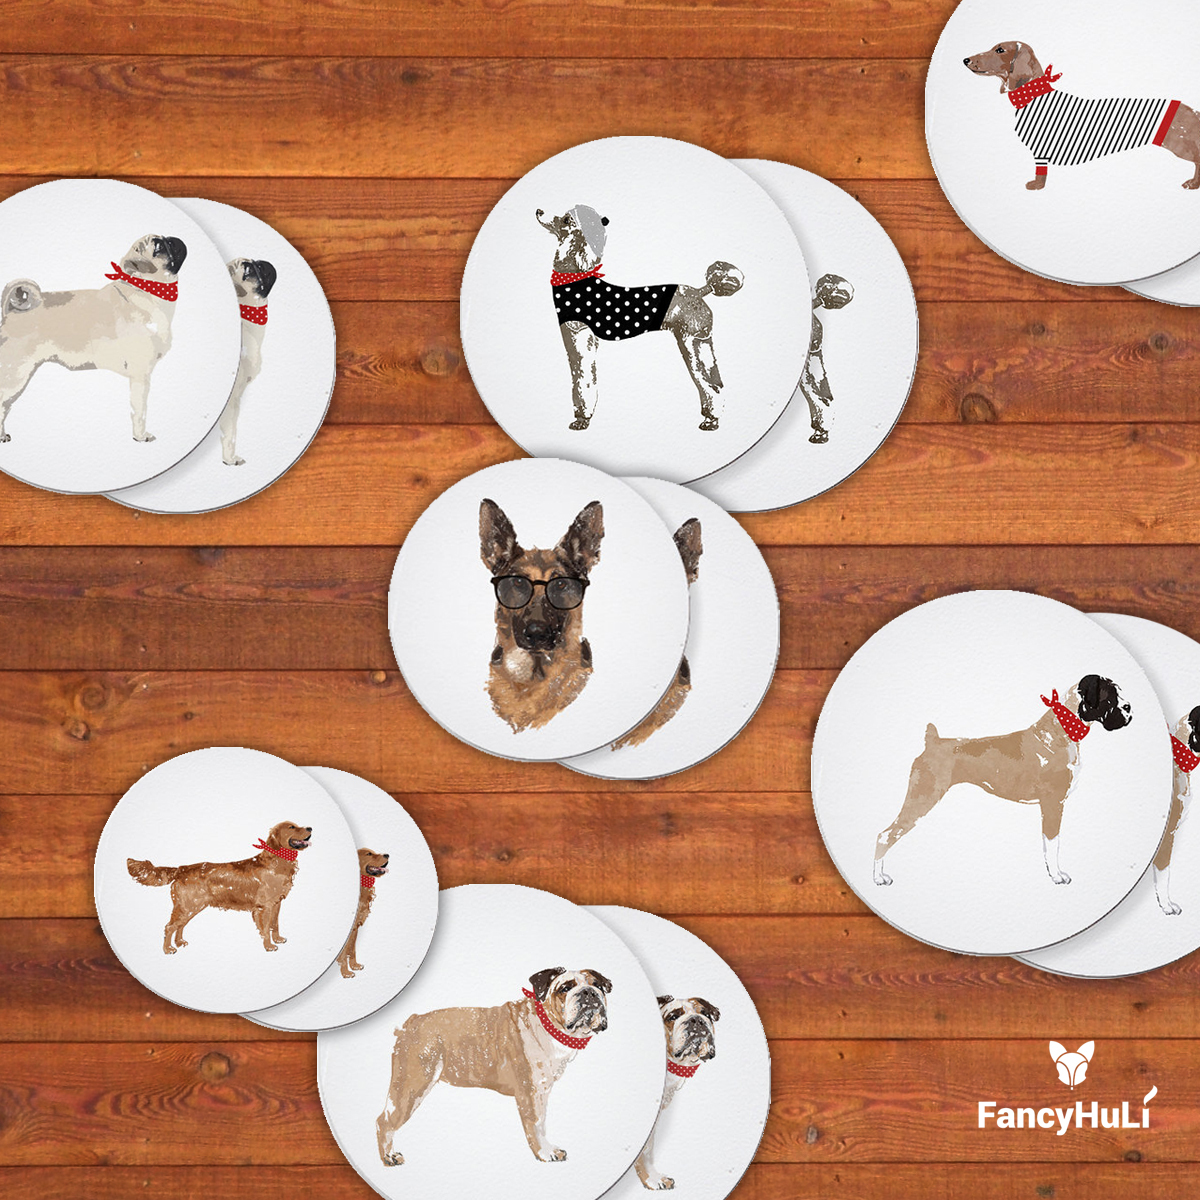 Modern Dog-Themed Gifts and Decor from Fancy HuLi